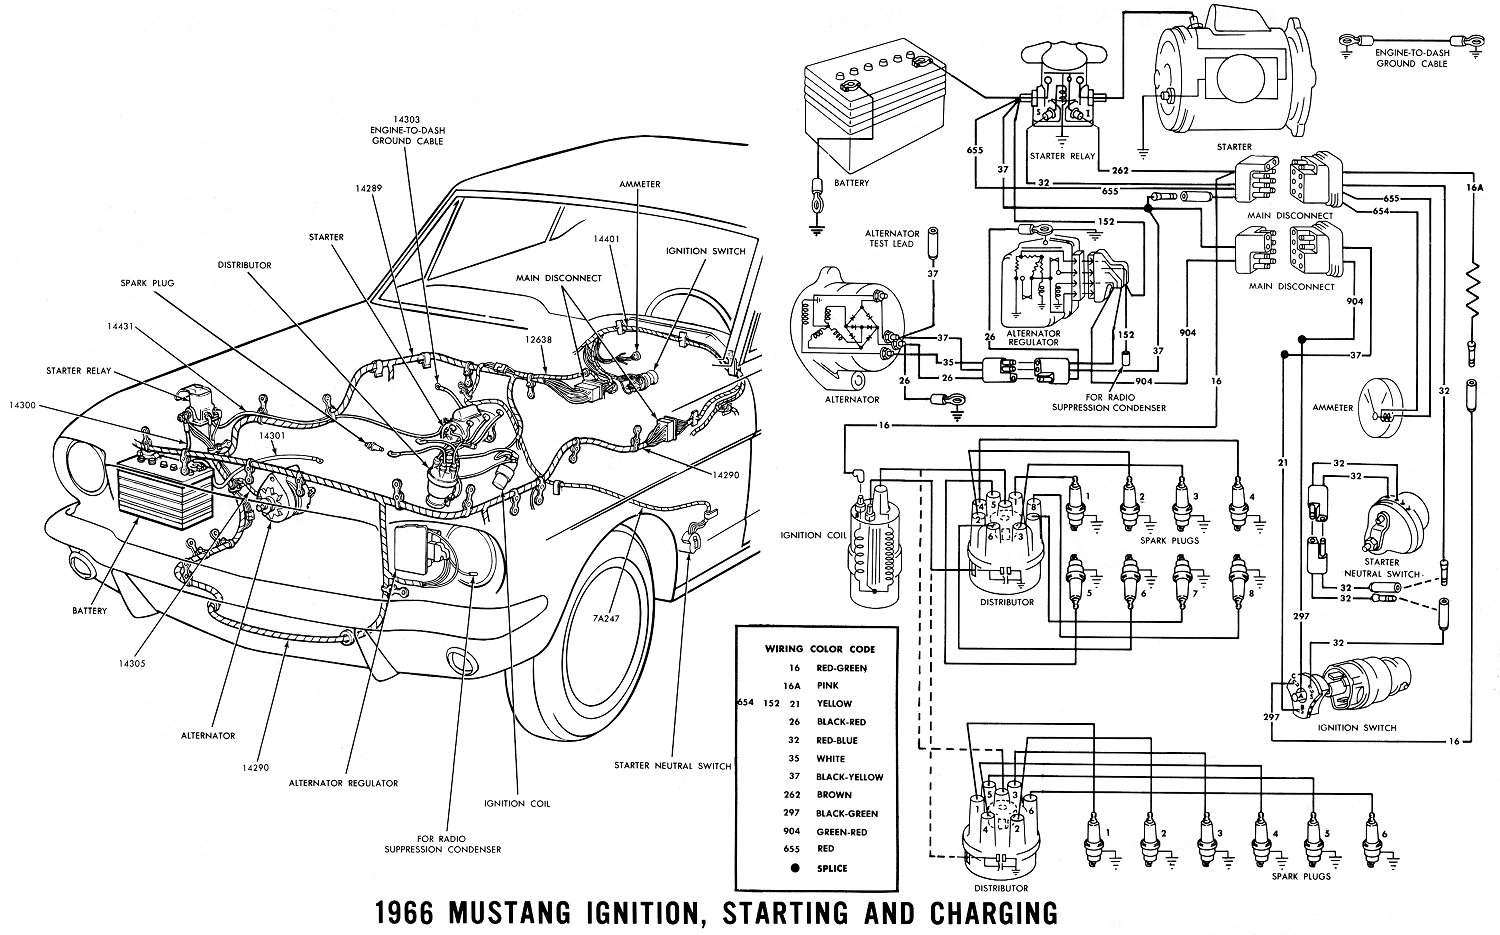 66ignit 1966 mustang wiring diagrams average joe restoration 1968 ford mustang wiring diagram at bayanpartner.co